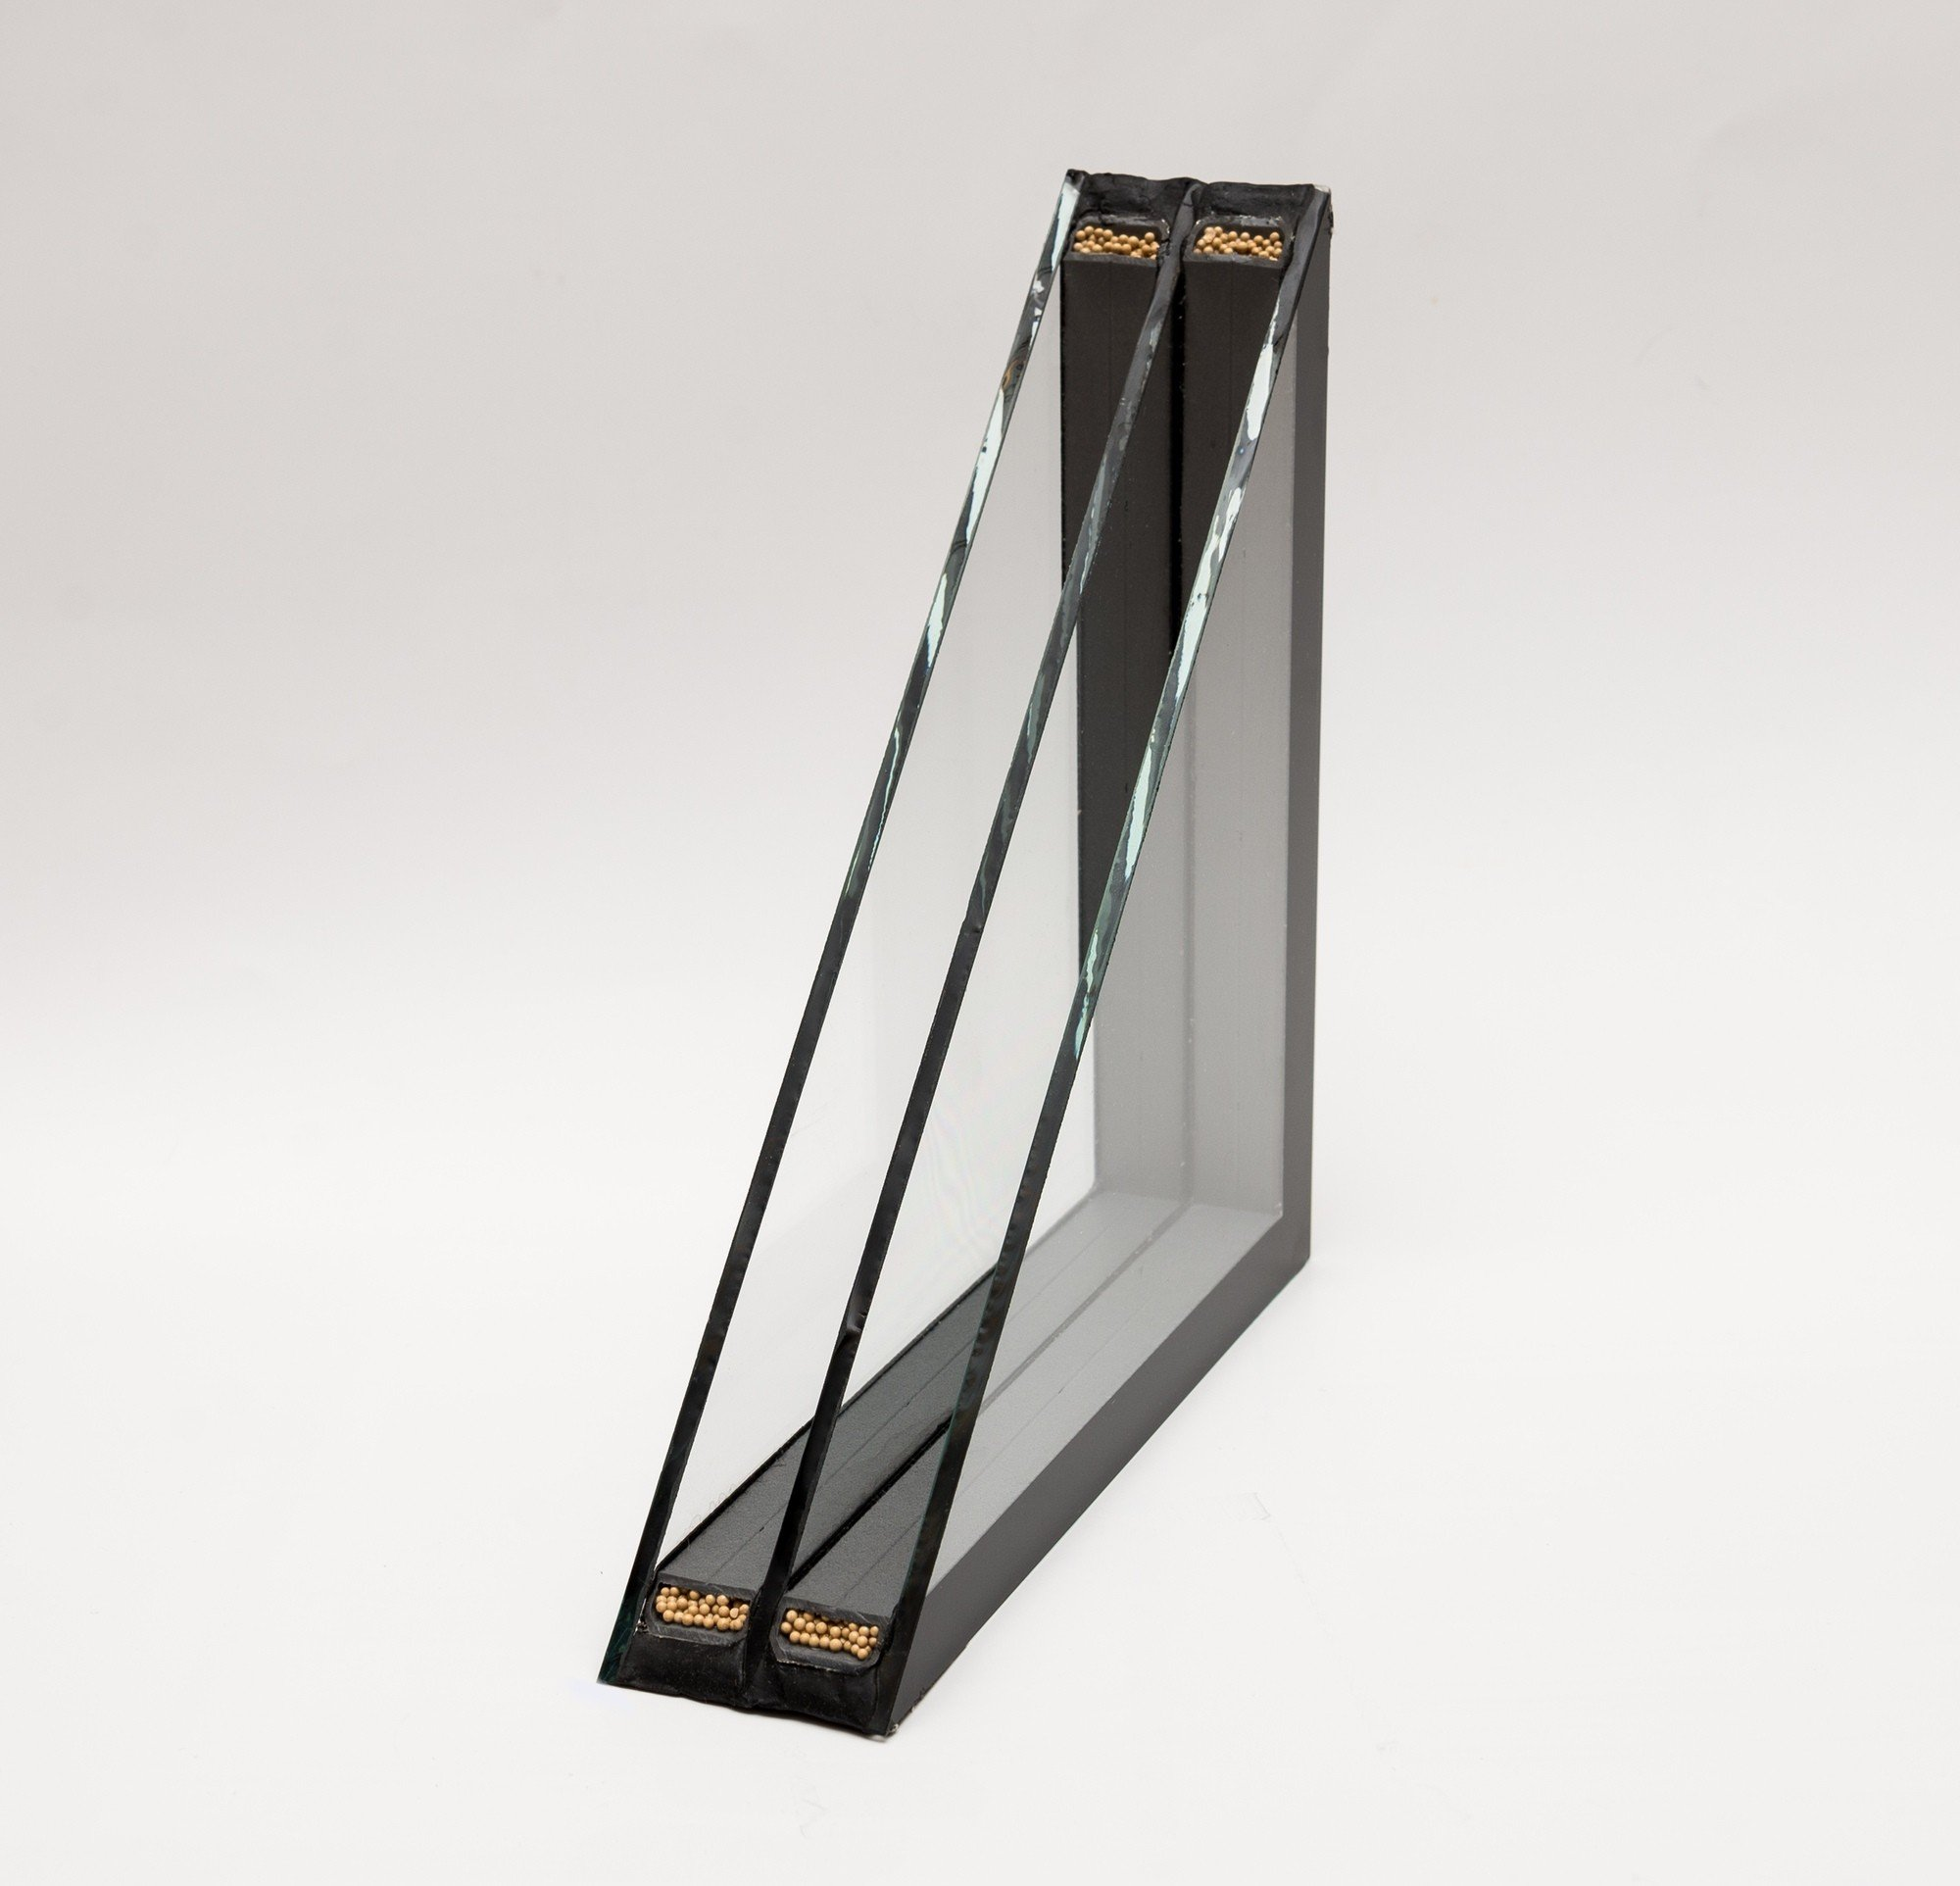 DRUTEX windows with the world-warmest Swisspacer Ultimate frame.